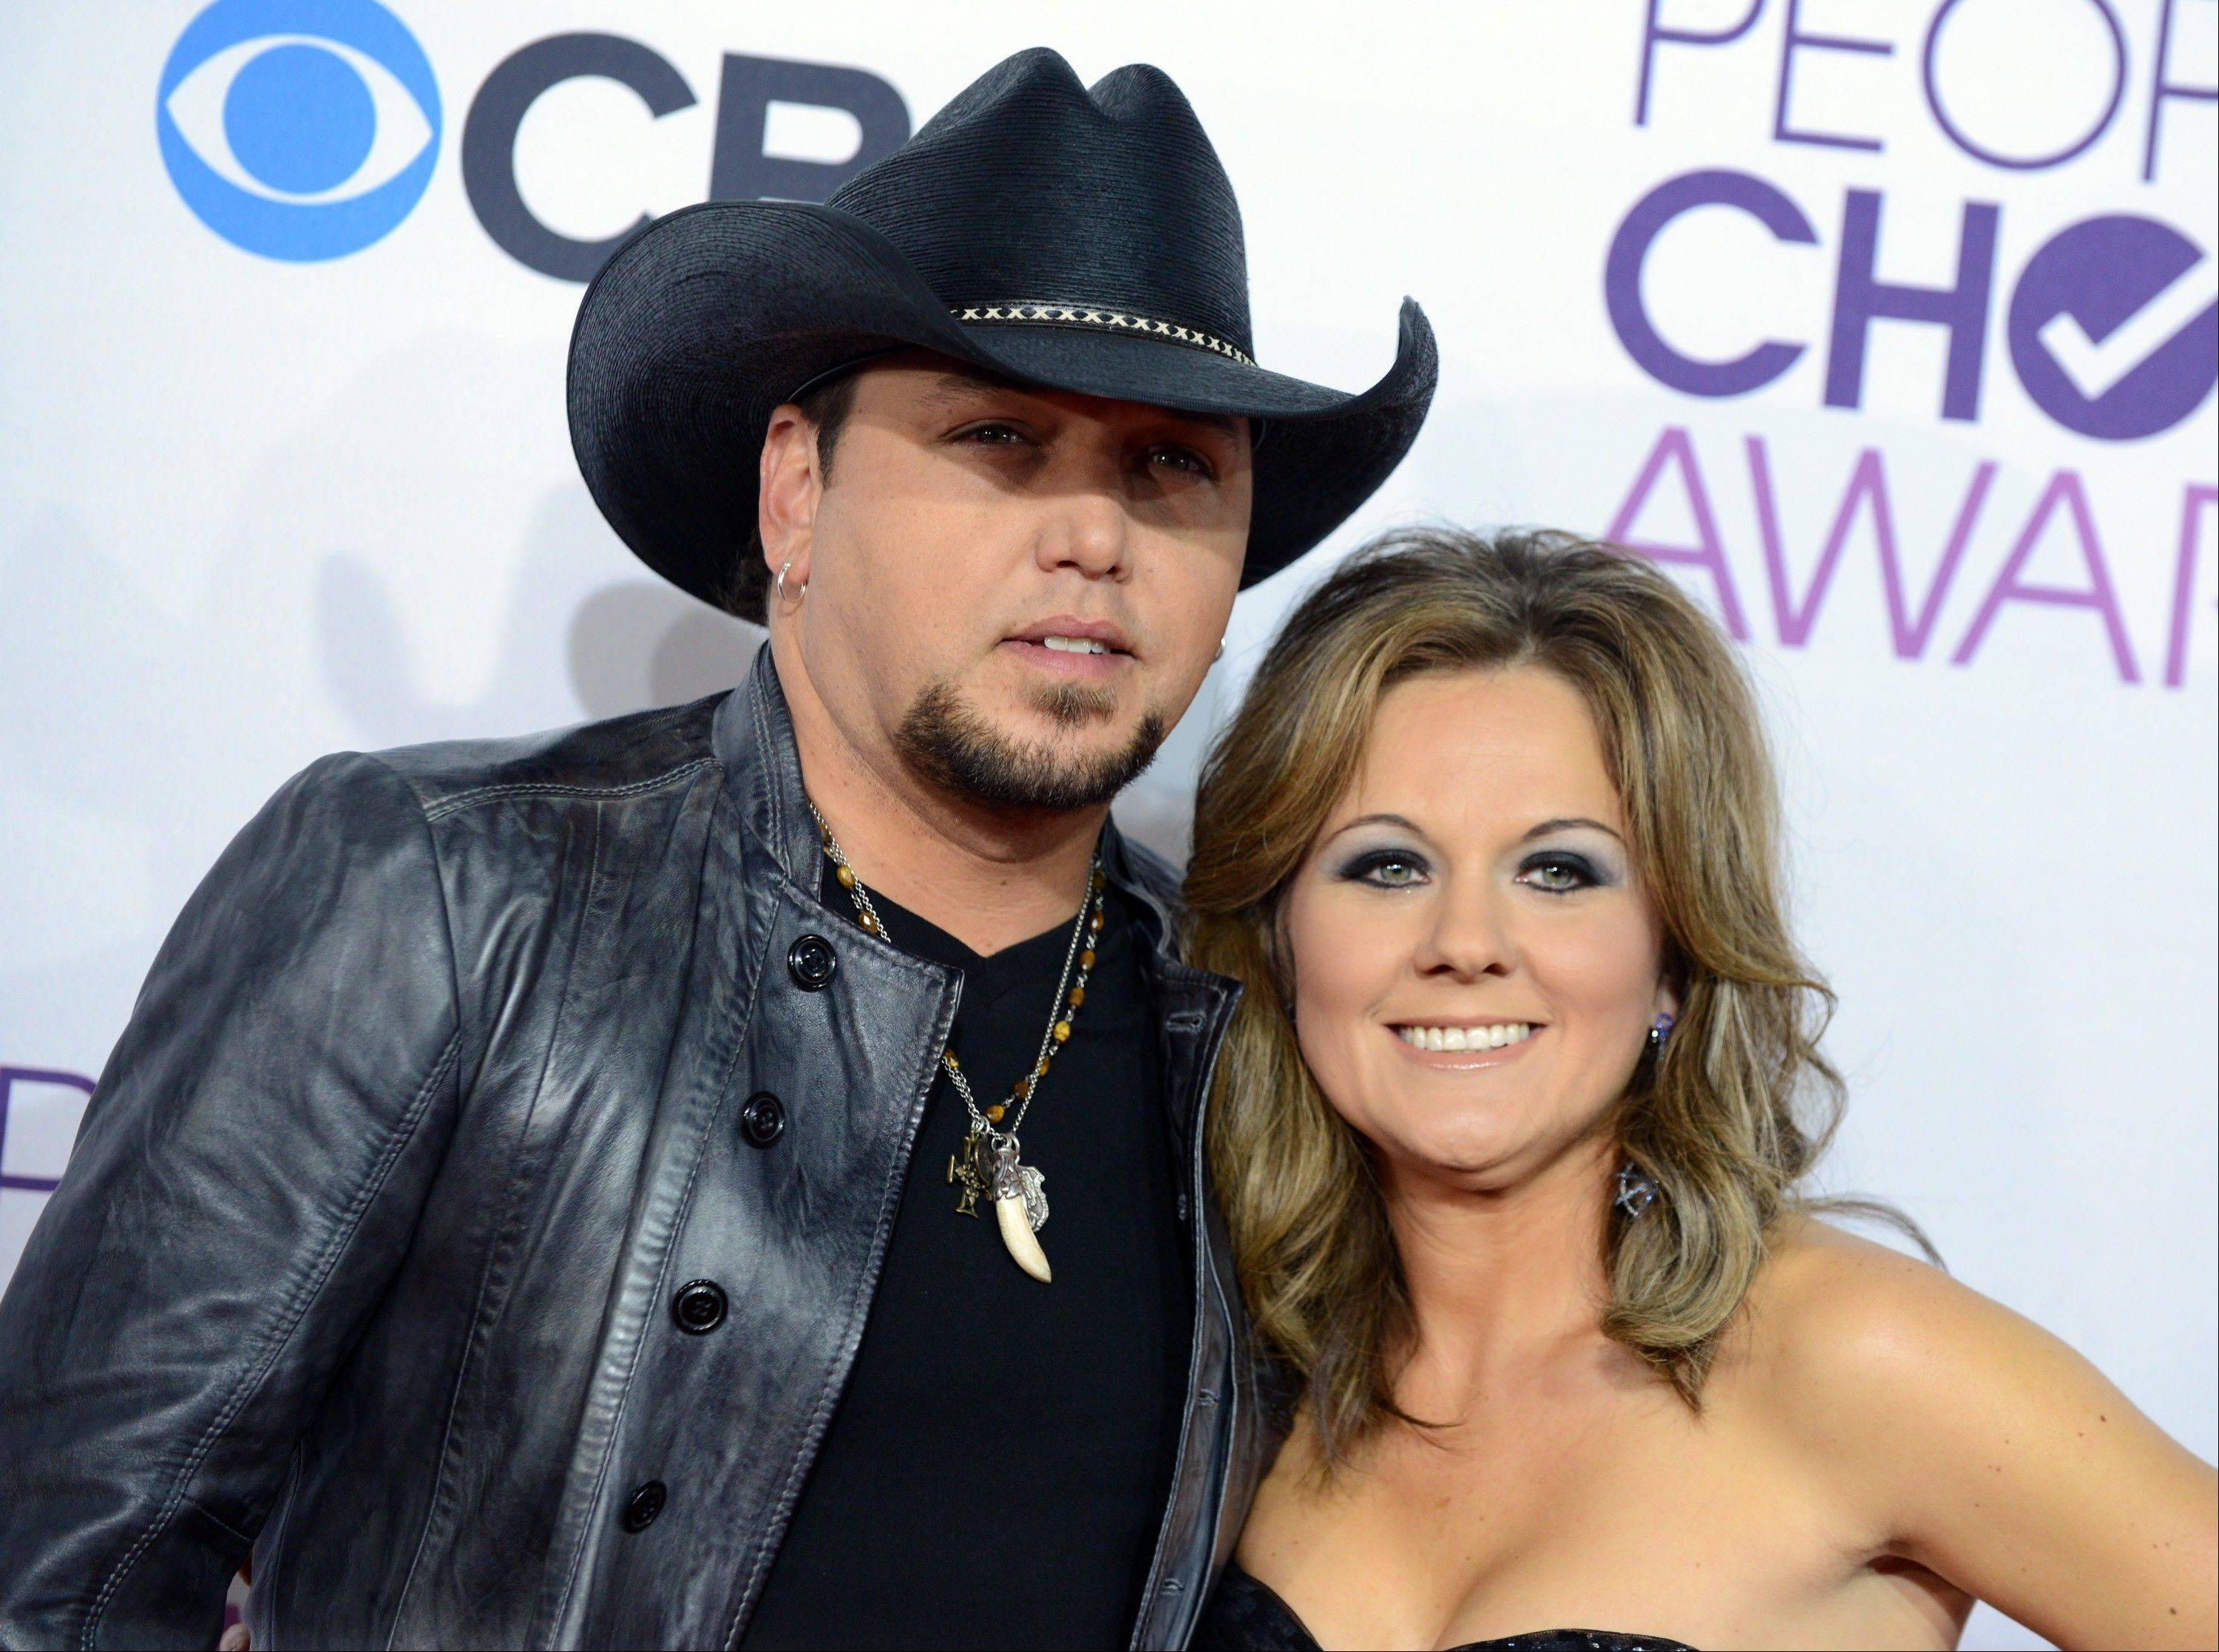 Court papers filed Friday, April 26, show Jason Aldean has filed for divorce from his wife, Jessica Ussery.